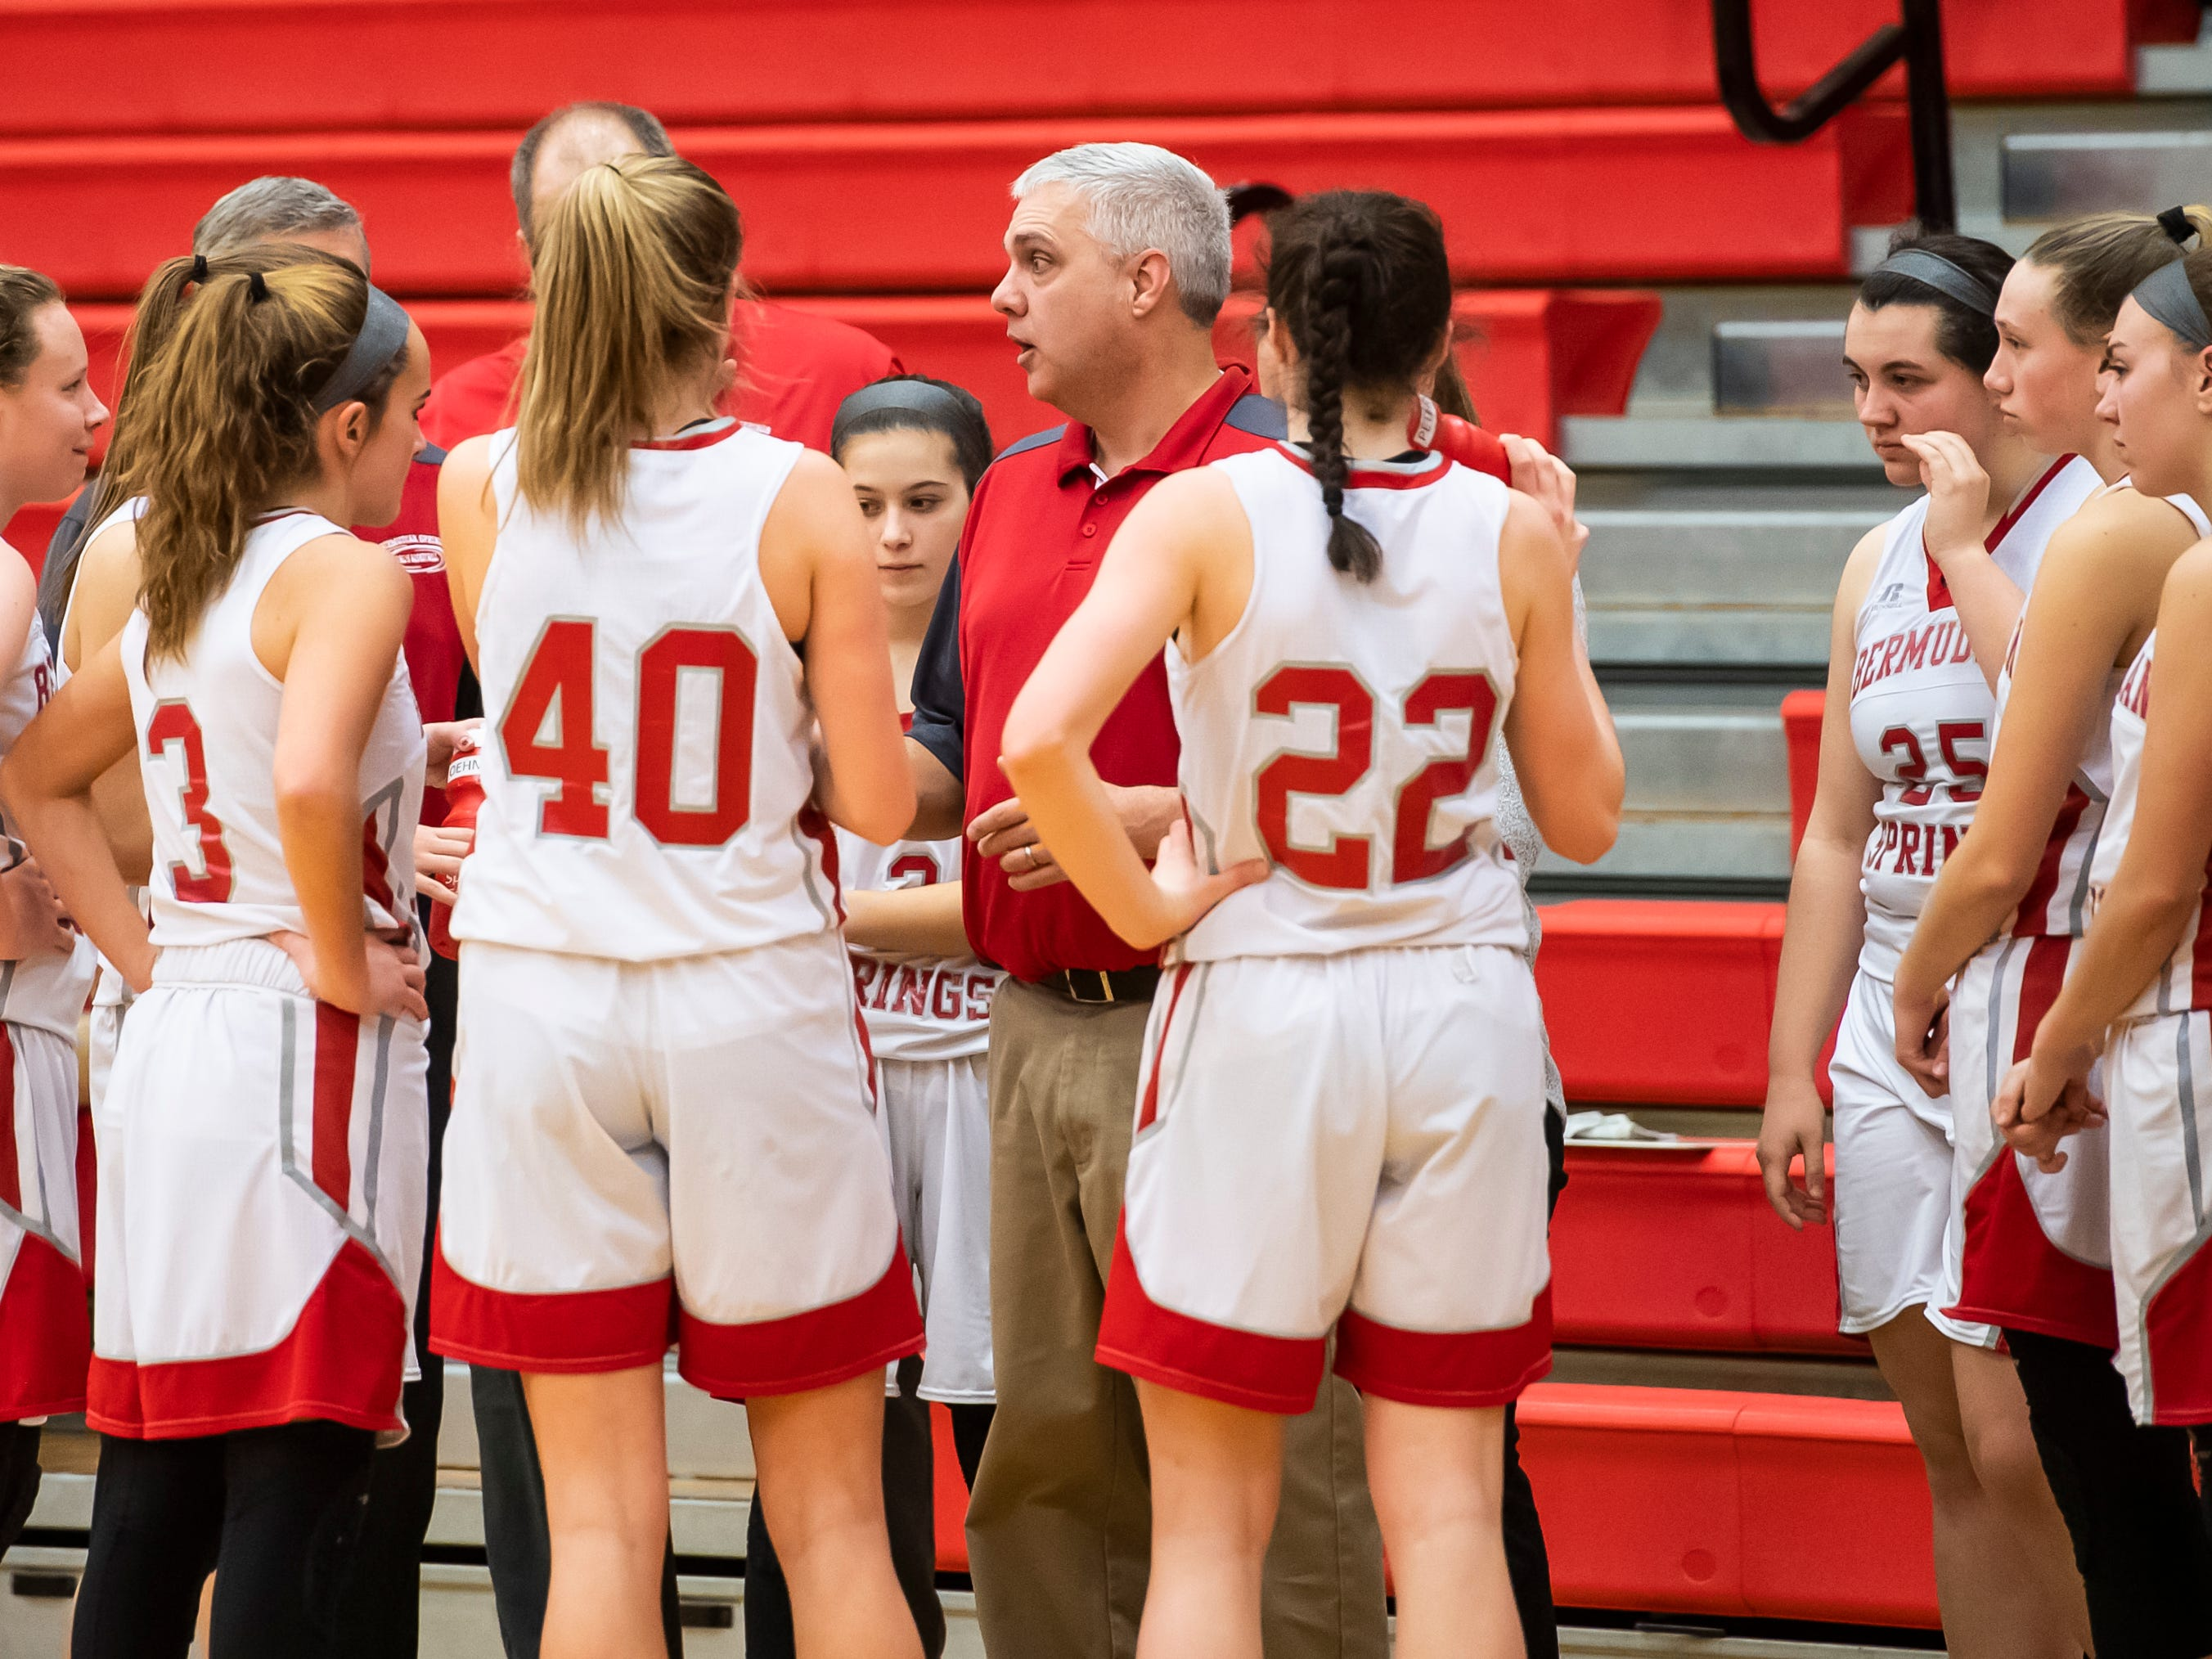 Bermudian Springs' head coach Todd Askins speaks with his players during a timeout against York Country Day School at Bermudian Springs High School on Monday, January 14, 2019. The Eagles won 59-20.